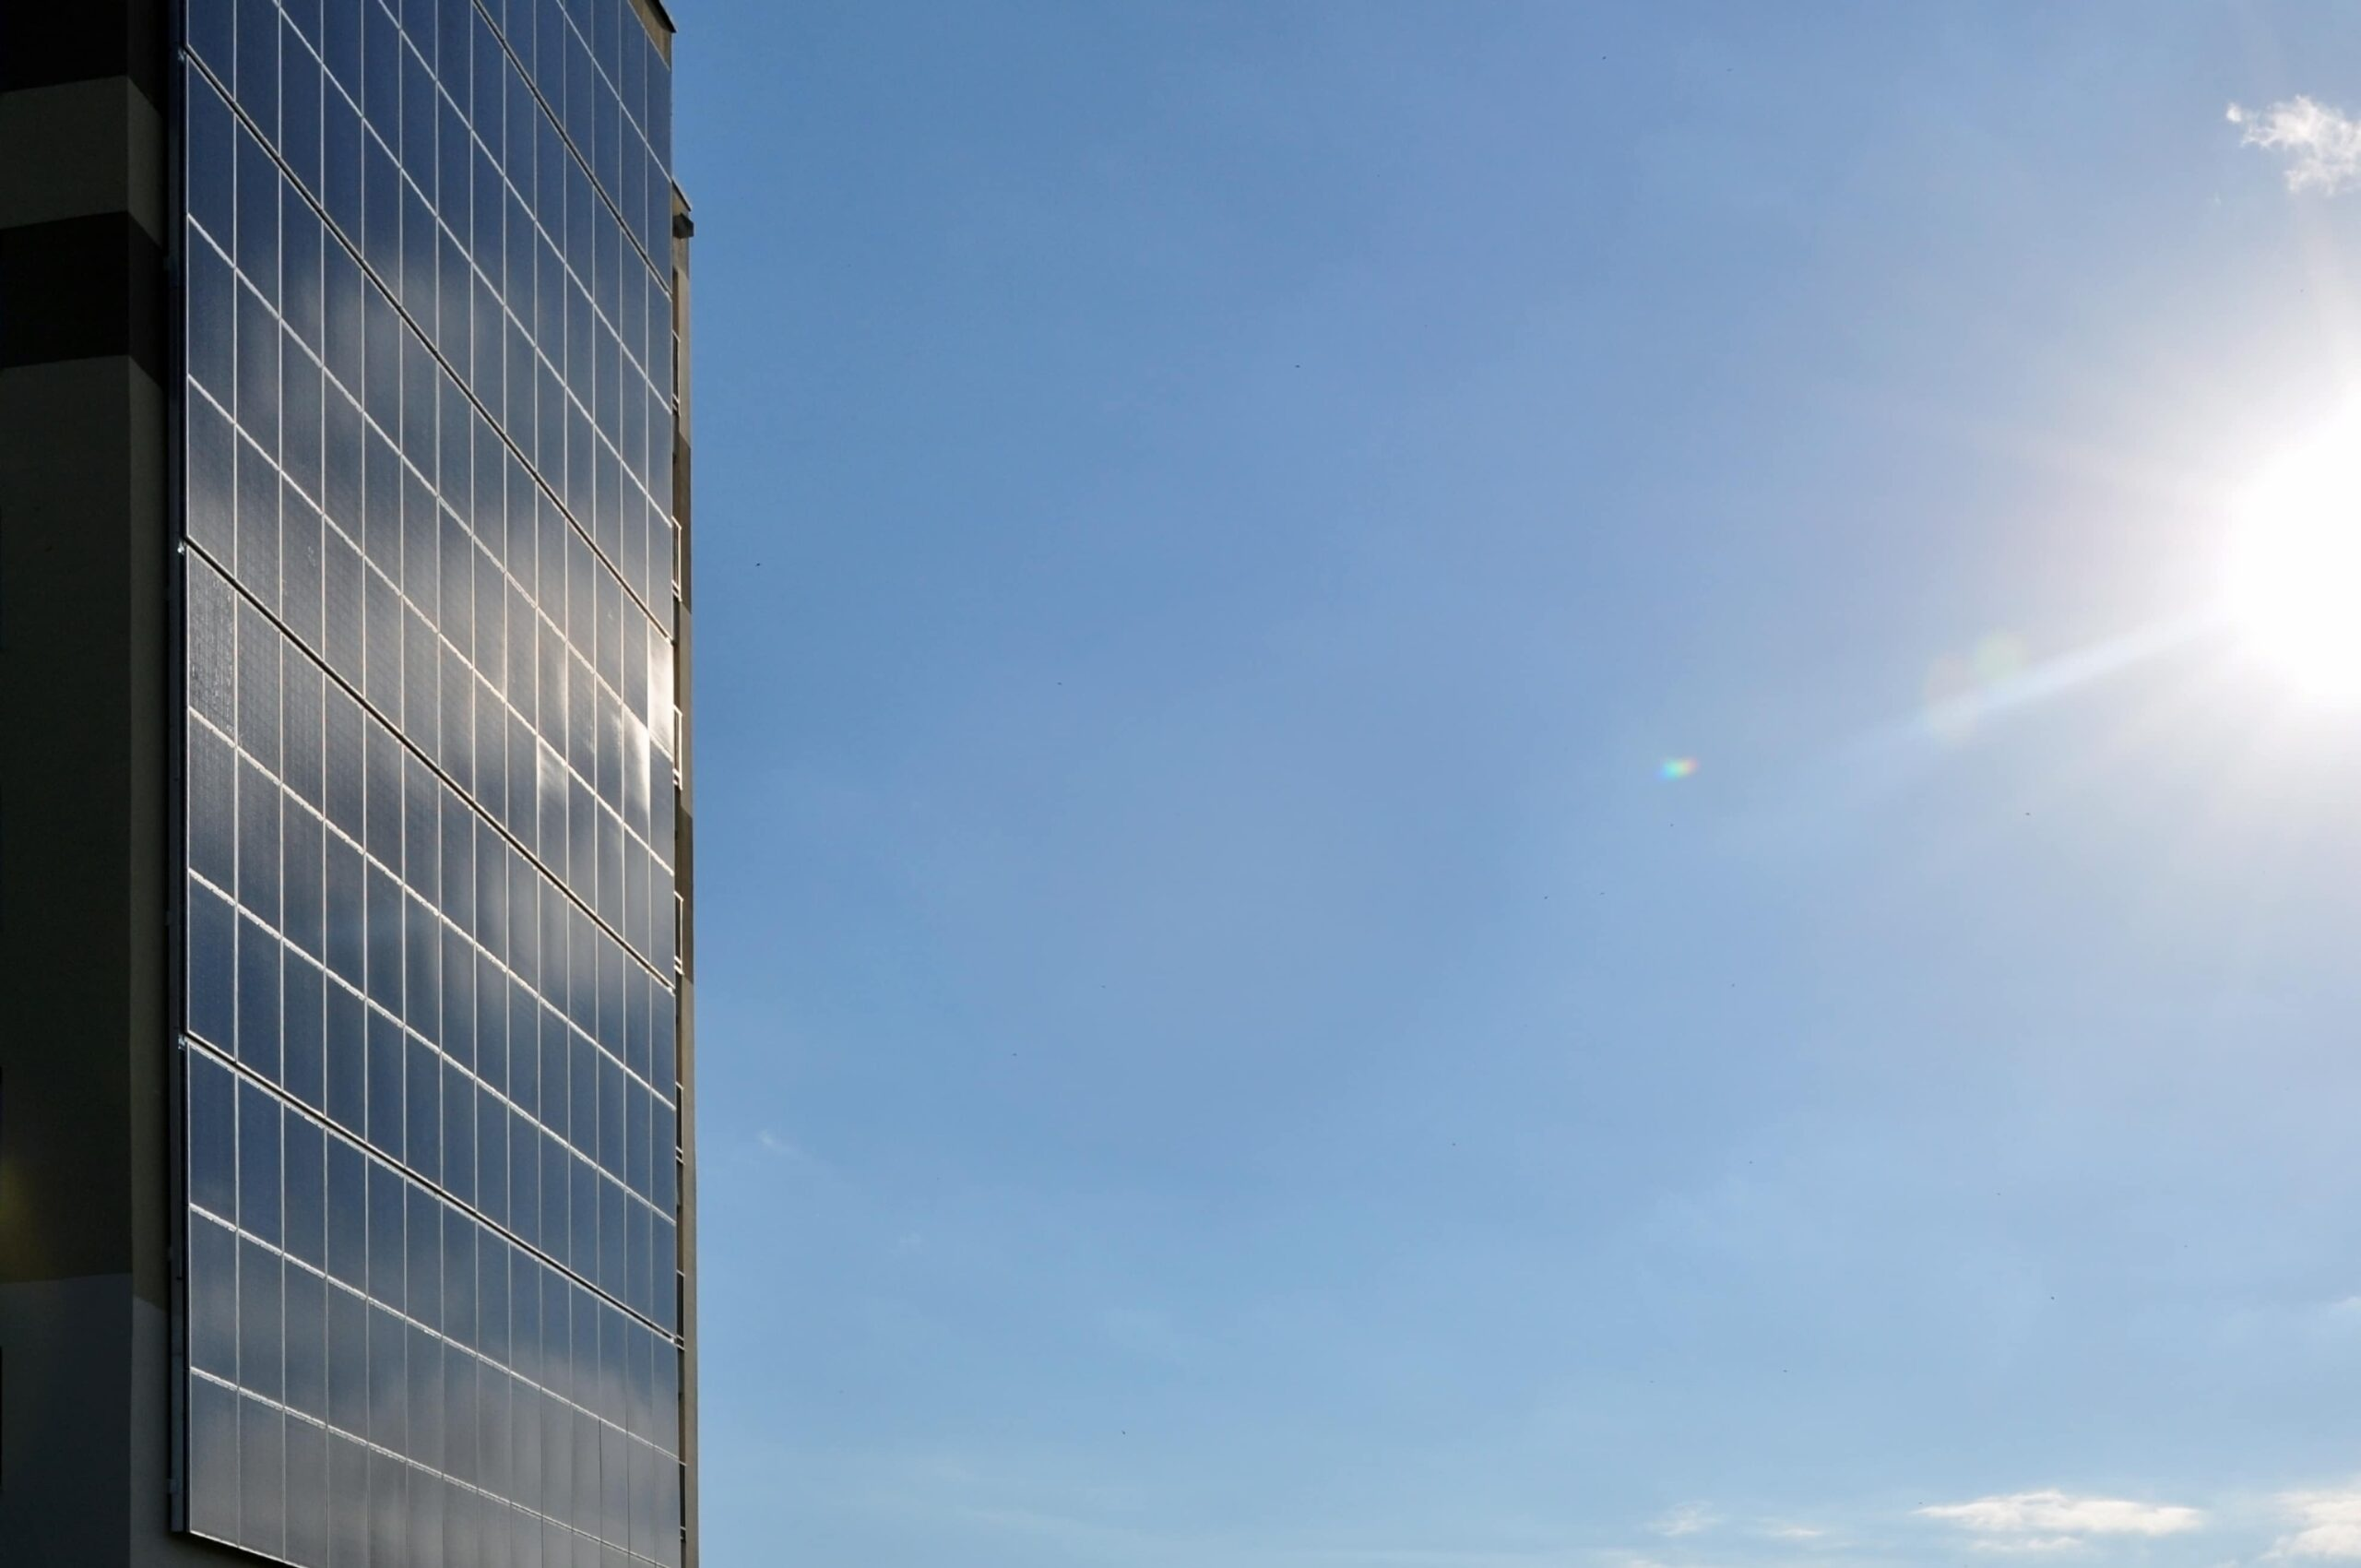 Wall with a wide solar panel against the blue sky. Empty space.